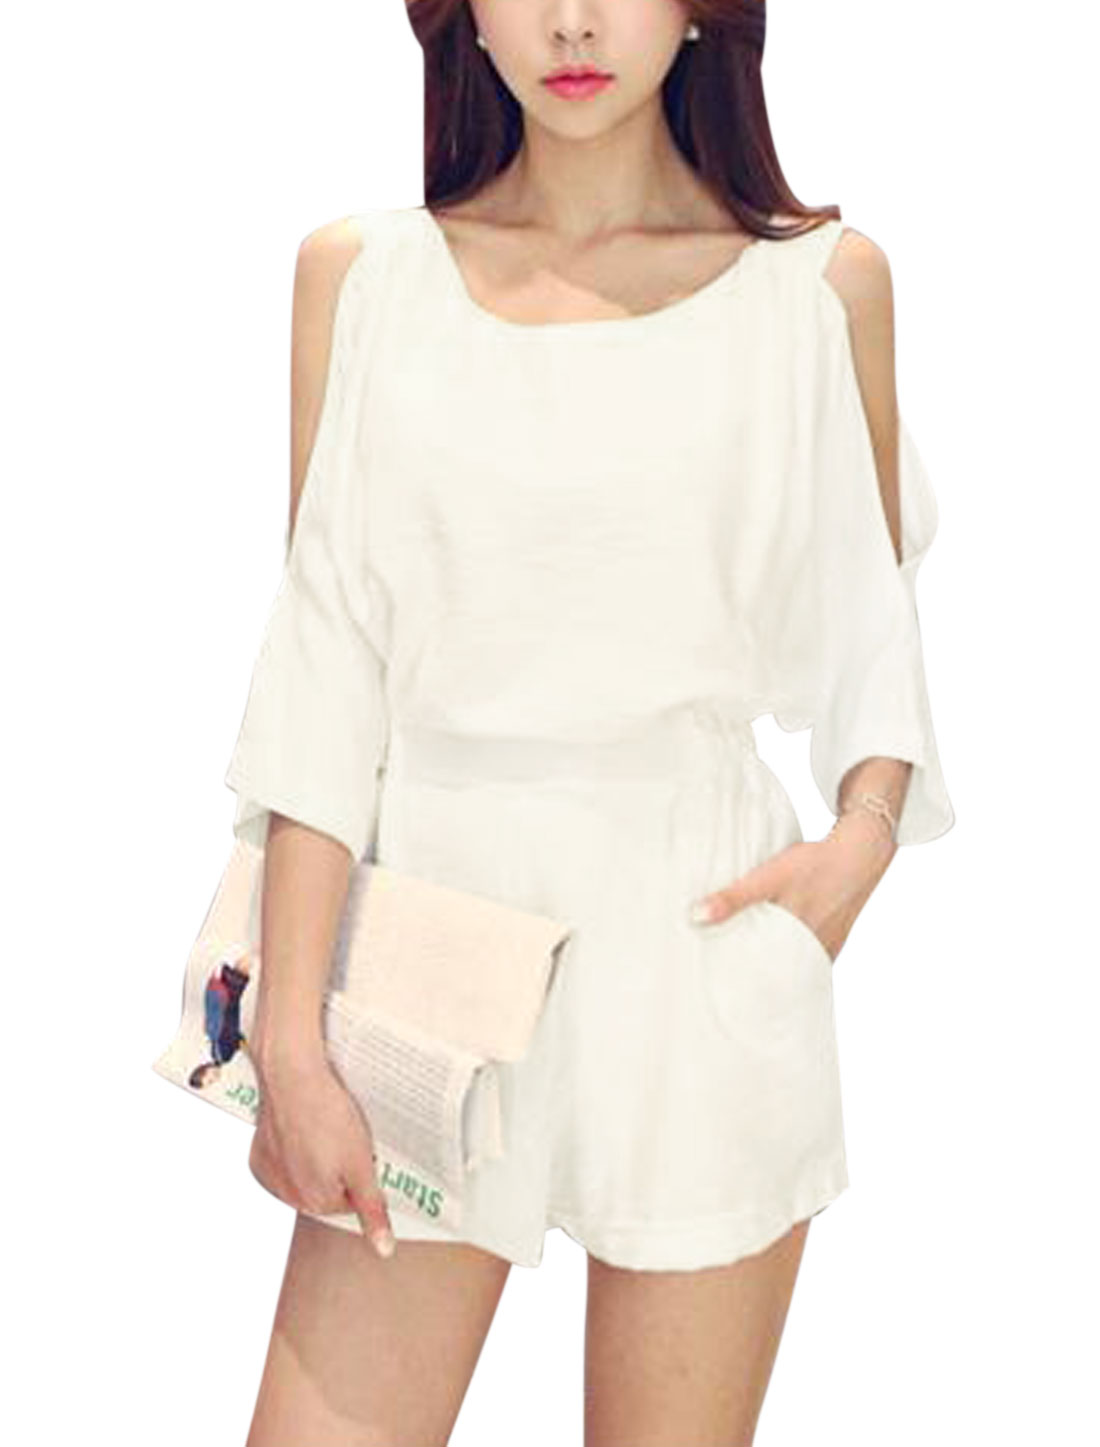 Women Round Neck Batwing Sleeve Cut Out Shoulder Pockets Casual Romper White M